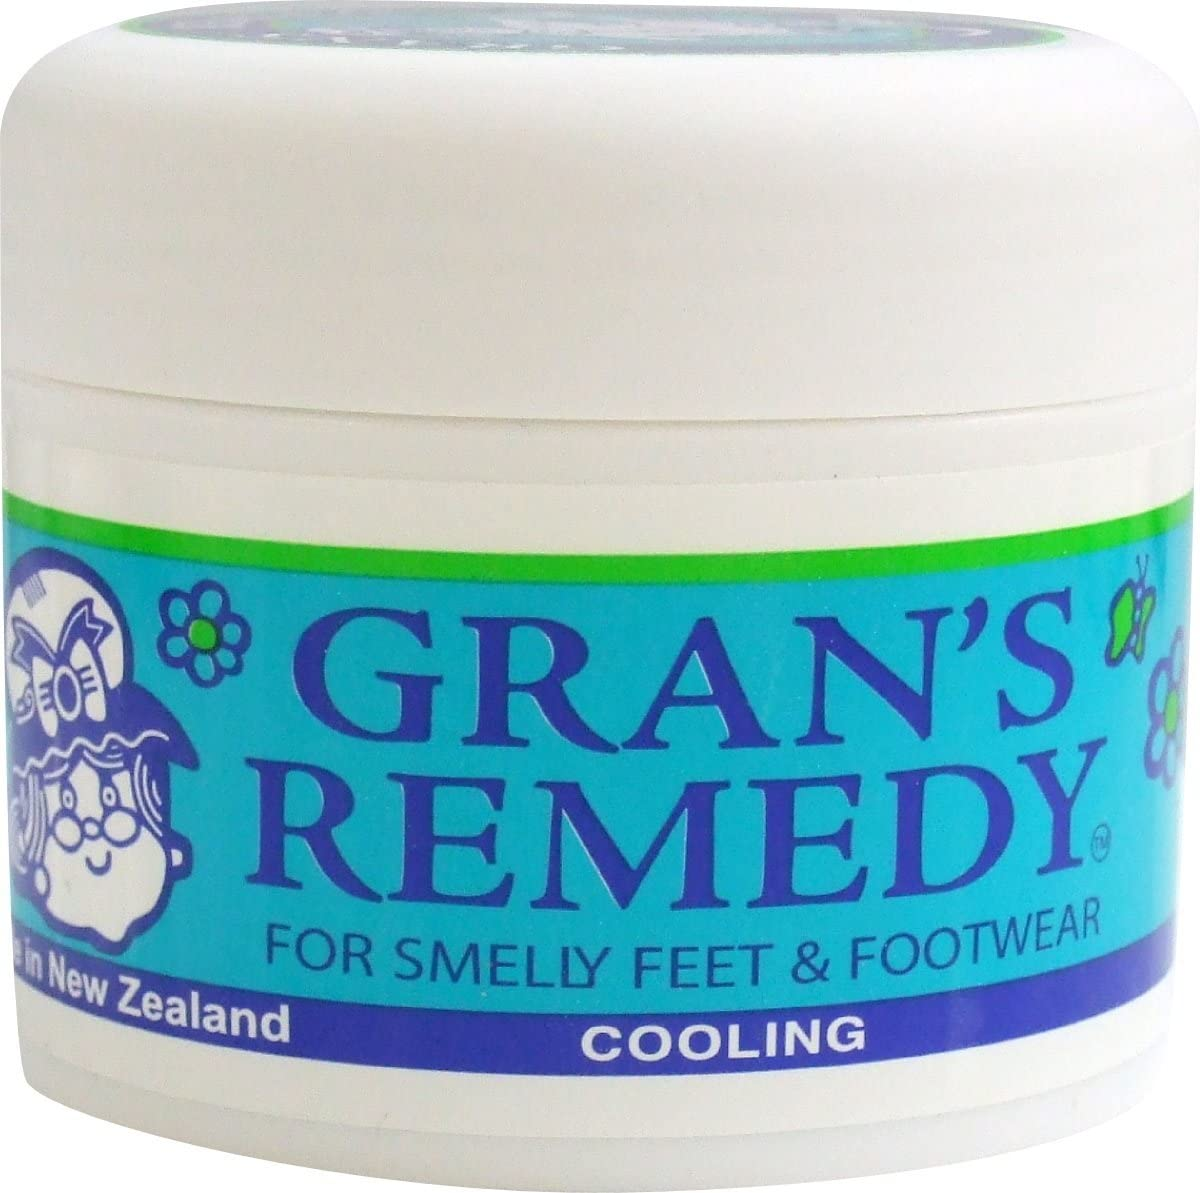 Foot Odor Eliminator for Smelly Feet & Footwear, Foot Care Powder,freshens Better Than Spray Deodorant